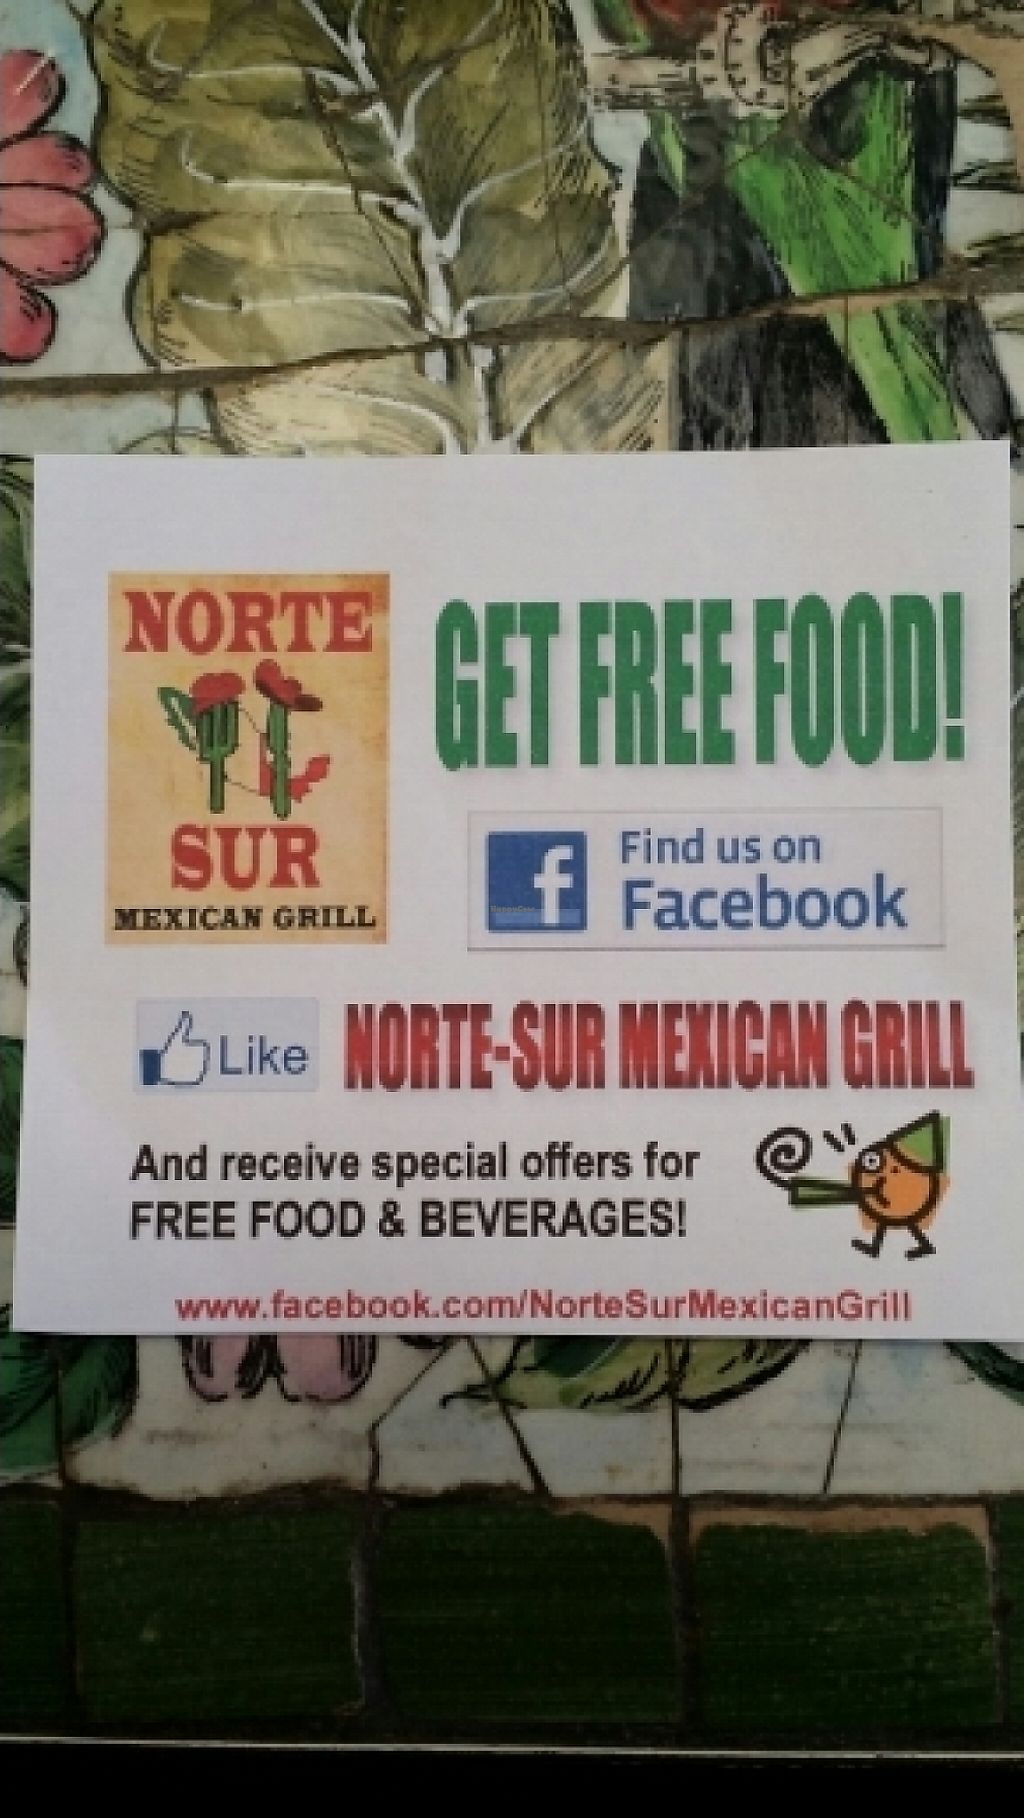 """Photo of Norte Sur  by <a href=""""/members/profile/catbone"""">catbone</a> <br/>Facebook 'Free Food' Offer <br/> January 20, 2016  - <a href='/contact/abuse/image/53445/188967'>Report</a>"""